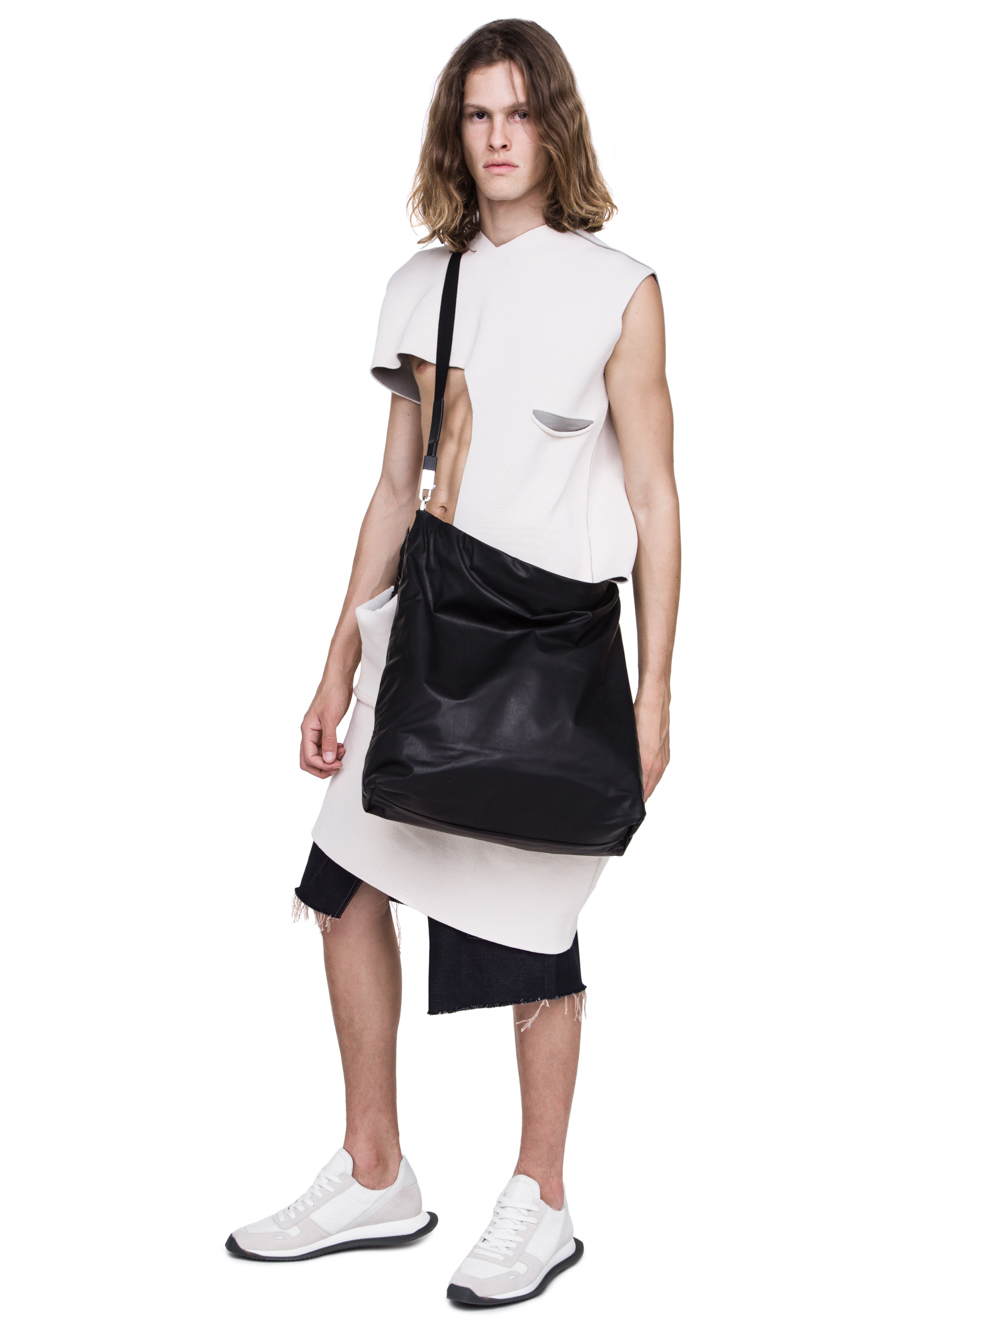 RICK OWENS OFF-THE-RUNWAY MEGA MAIL BAG IN BLACK BABY CALF LEATHER